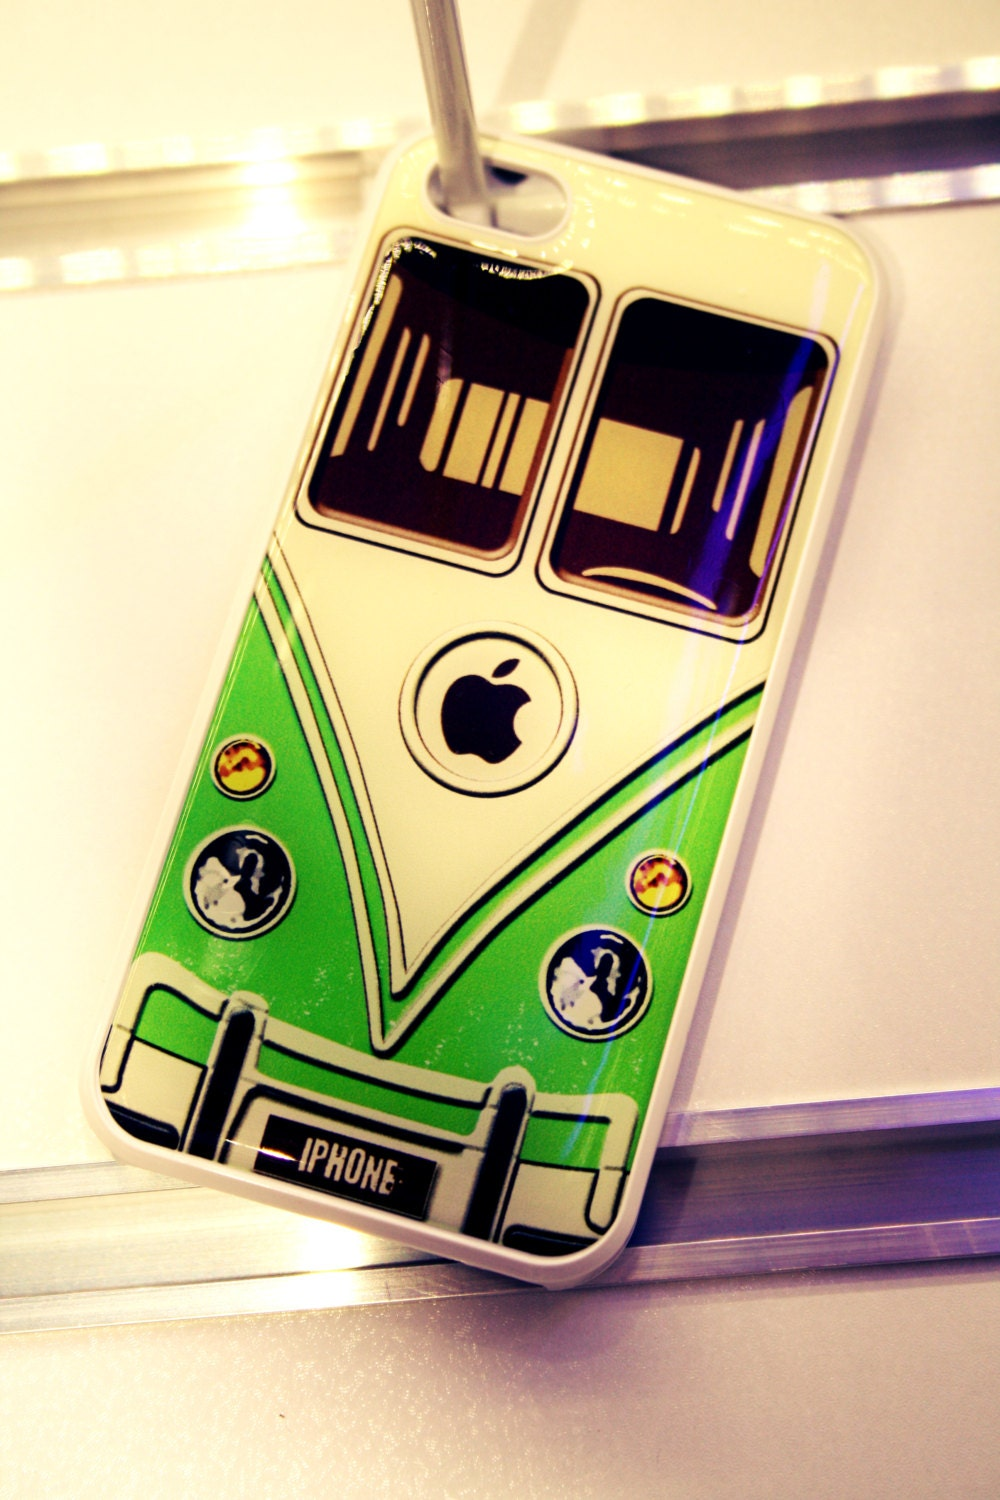 Volkswagen Iphone 5 Case - AntiqueDesignTR